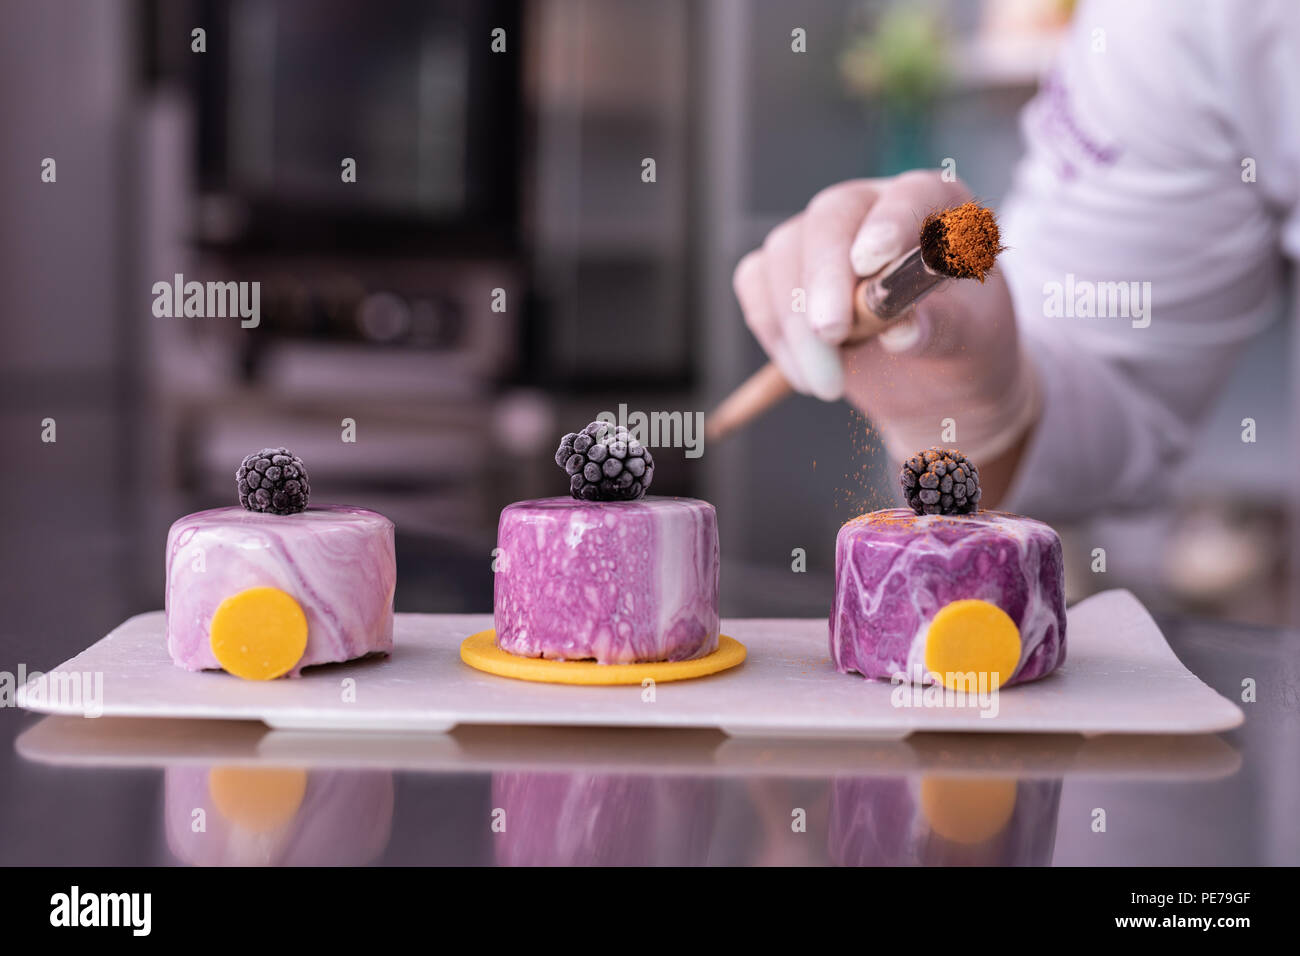 Chef decorating her cakes with cinnamon holding bakery brush - Stock Image